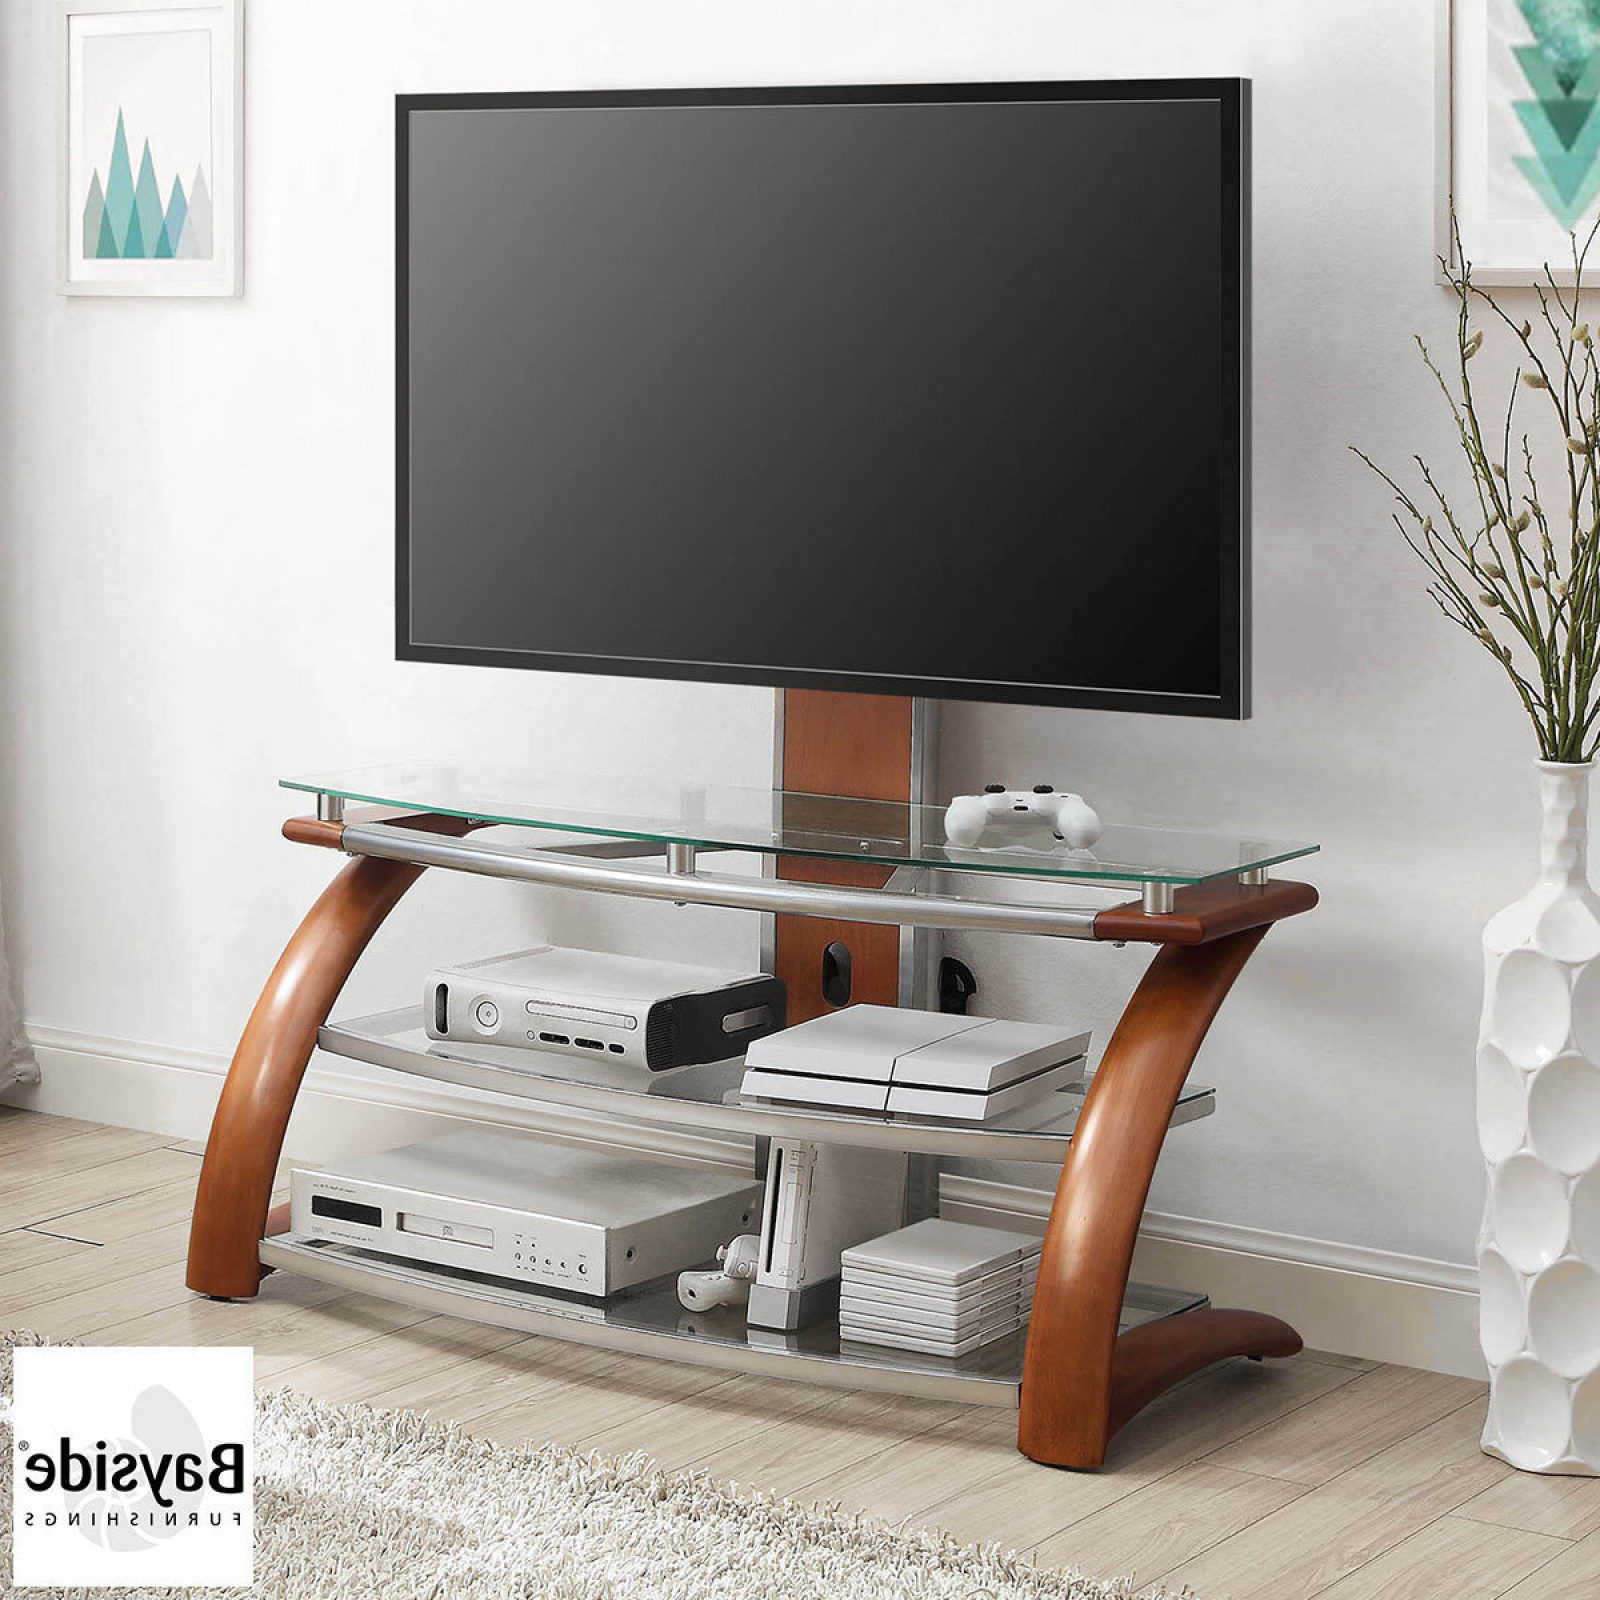 Floating Glass Tv Stands Regarding Popular Kross 3 Shelf Glass Tv Stand Floating With Mount 2 3 Shelf – Up To (Gallery 13 of 20)